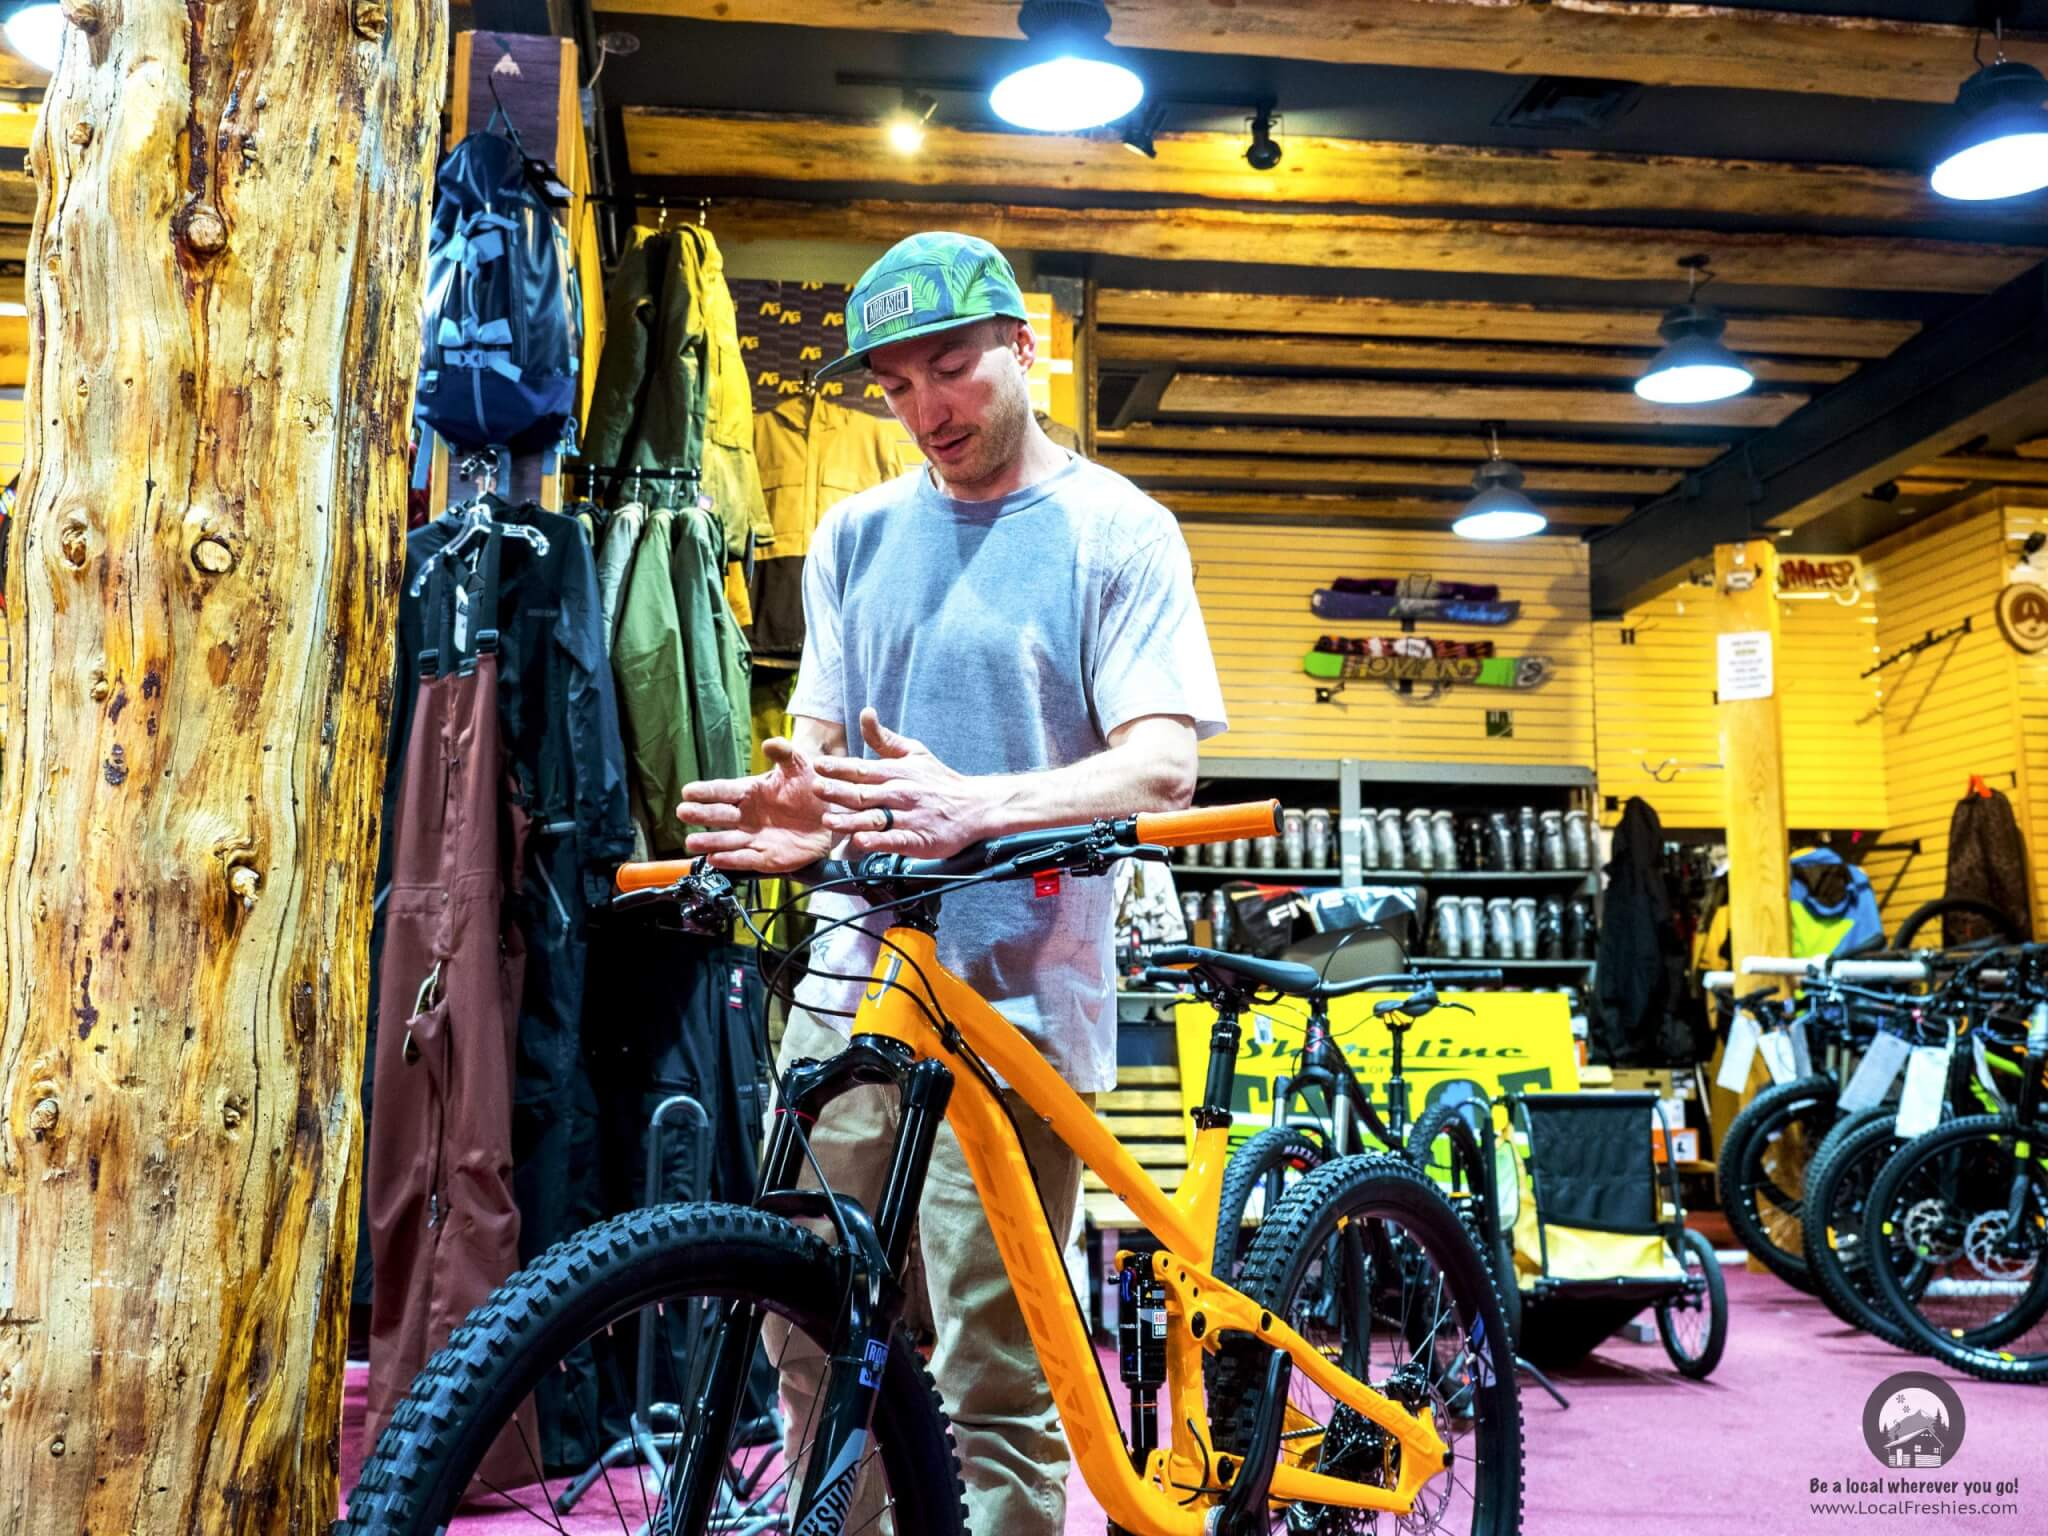 Interior of Shoreline of Tahoe owner Ken Raspen showing new Norco bike